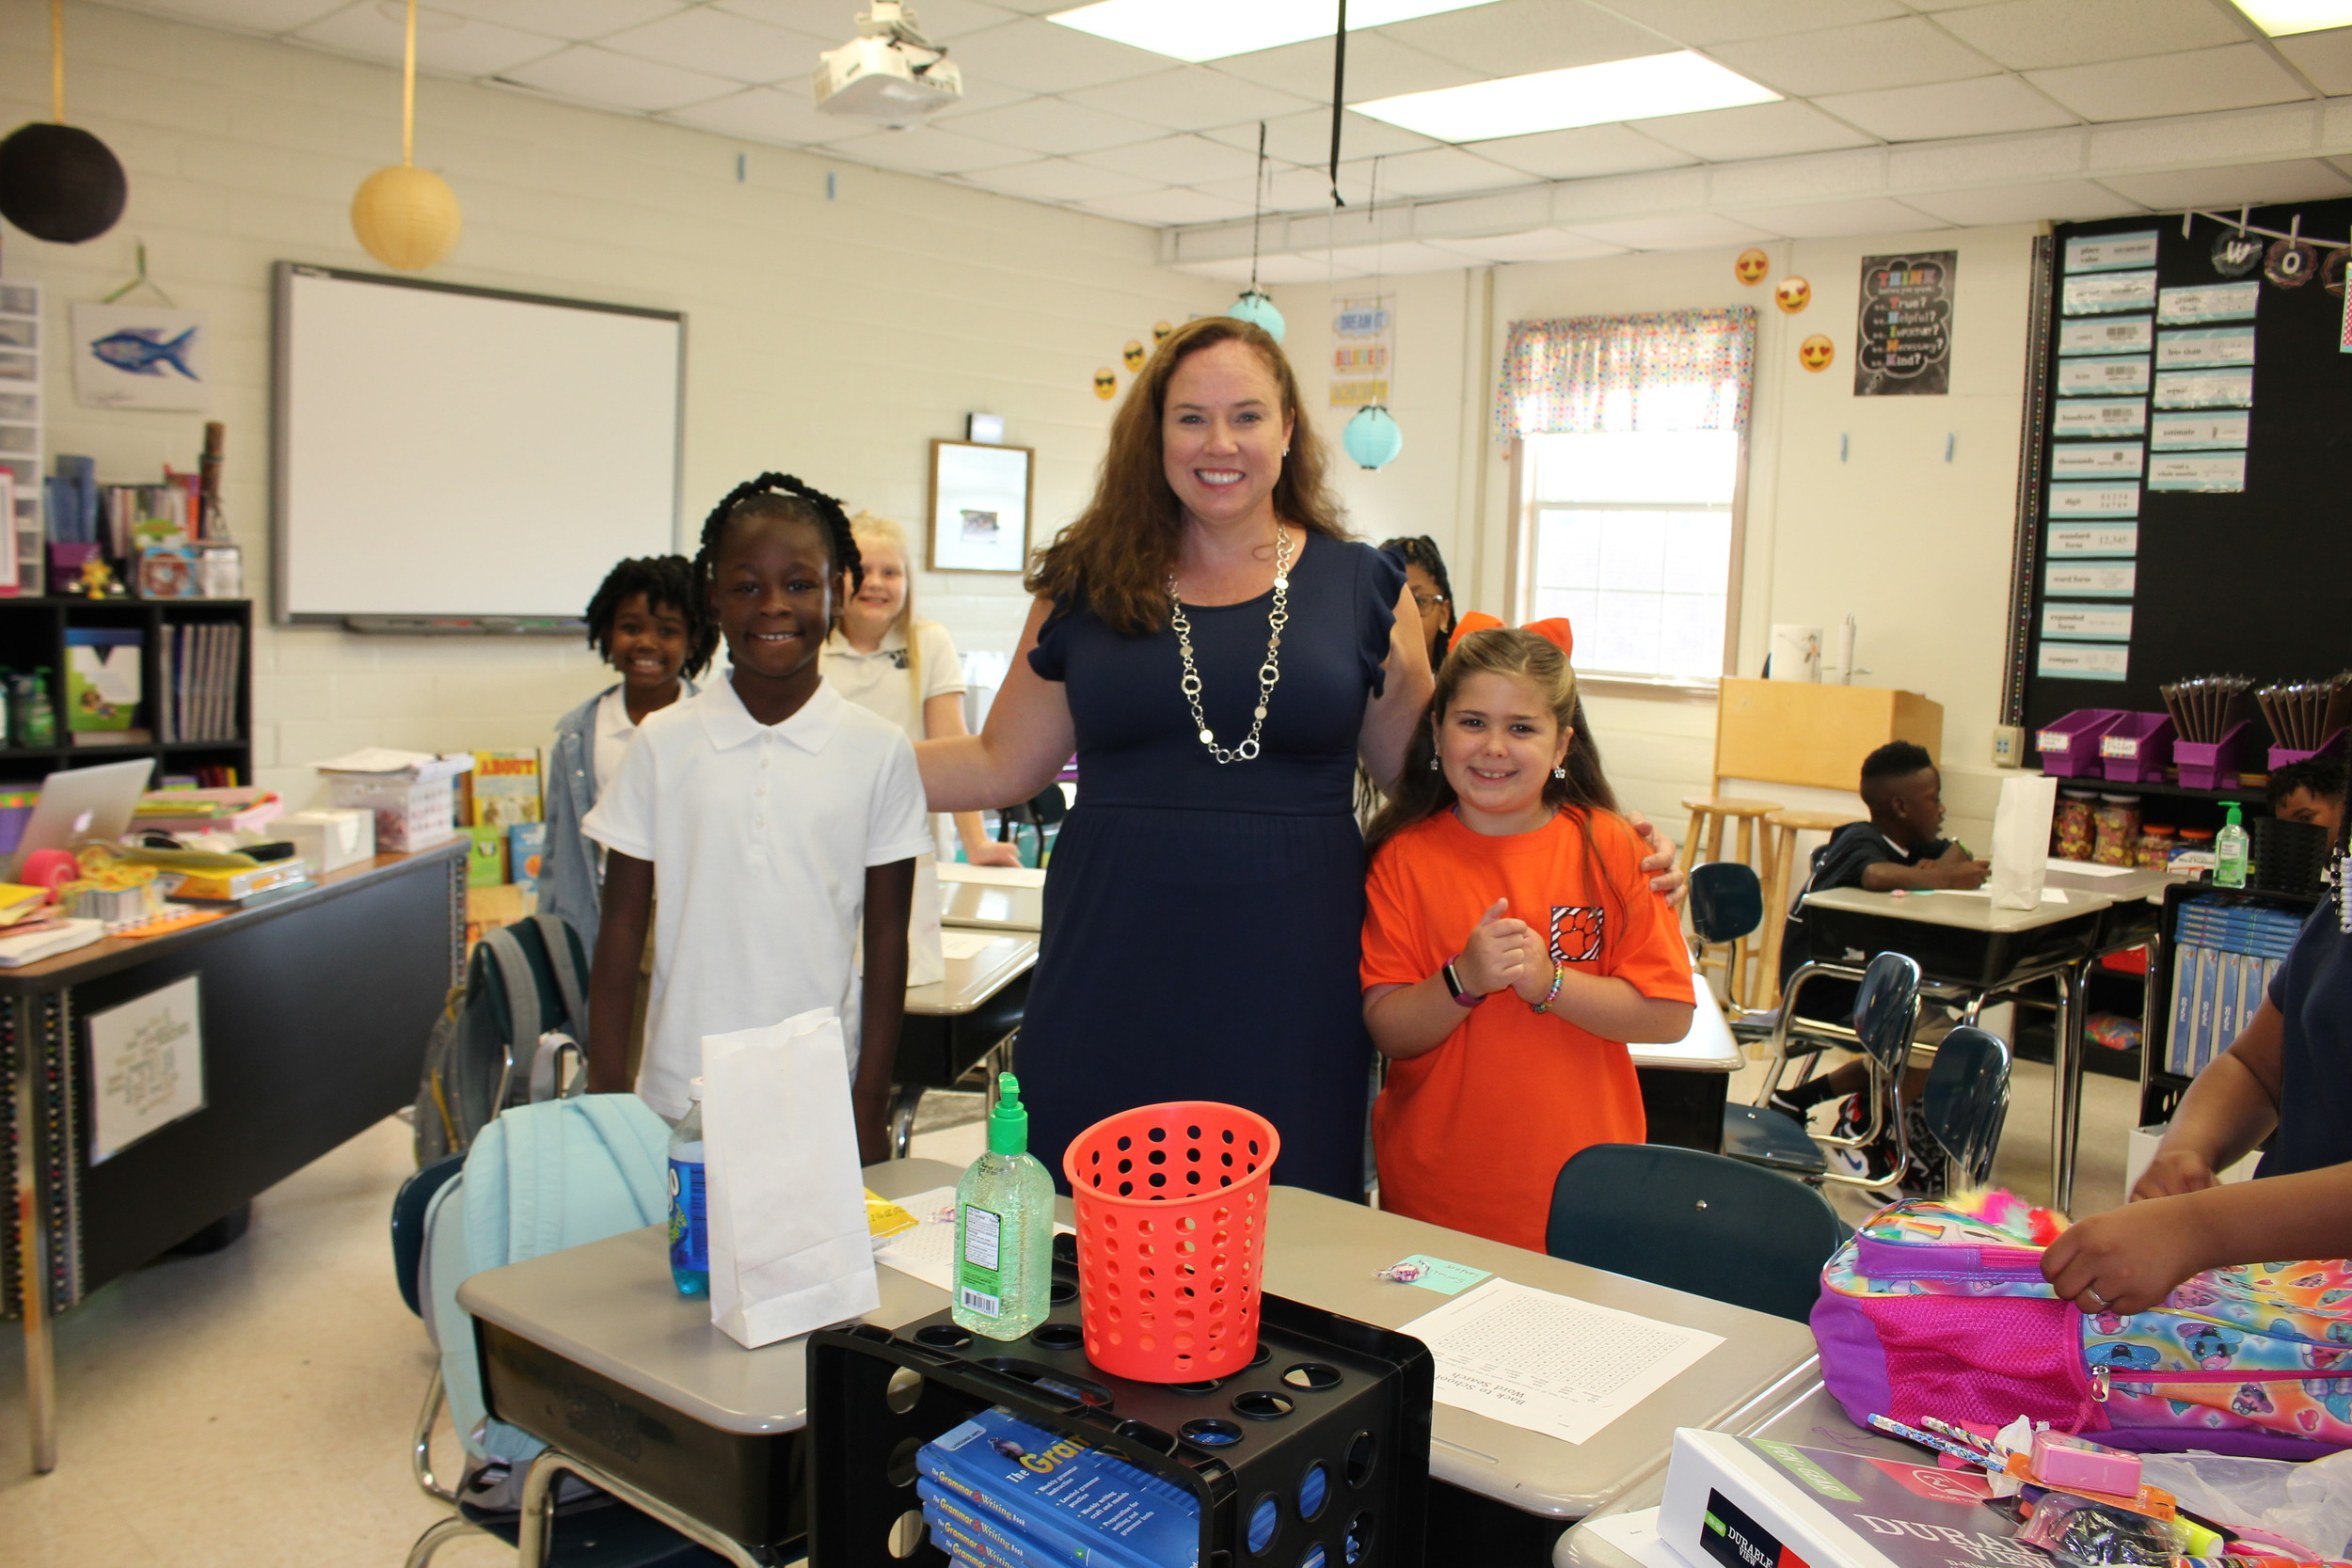 Fourth grade teacher Sharon Bell helps her new class get unpacked and ready to learn.